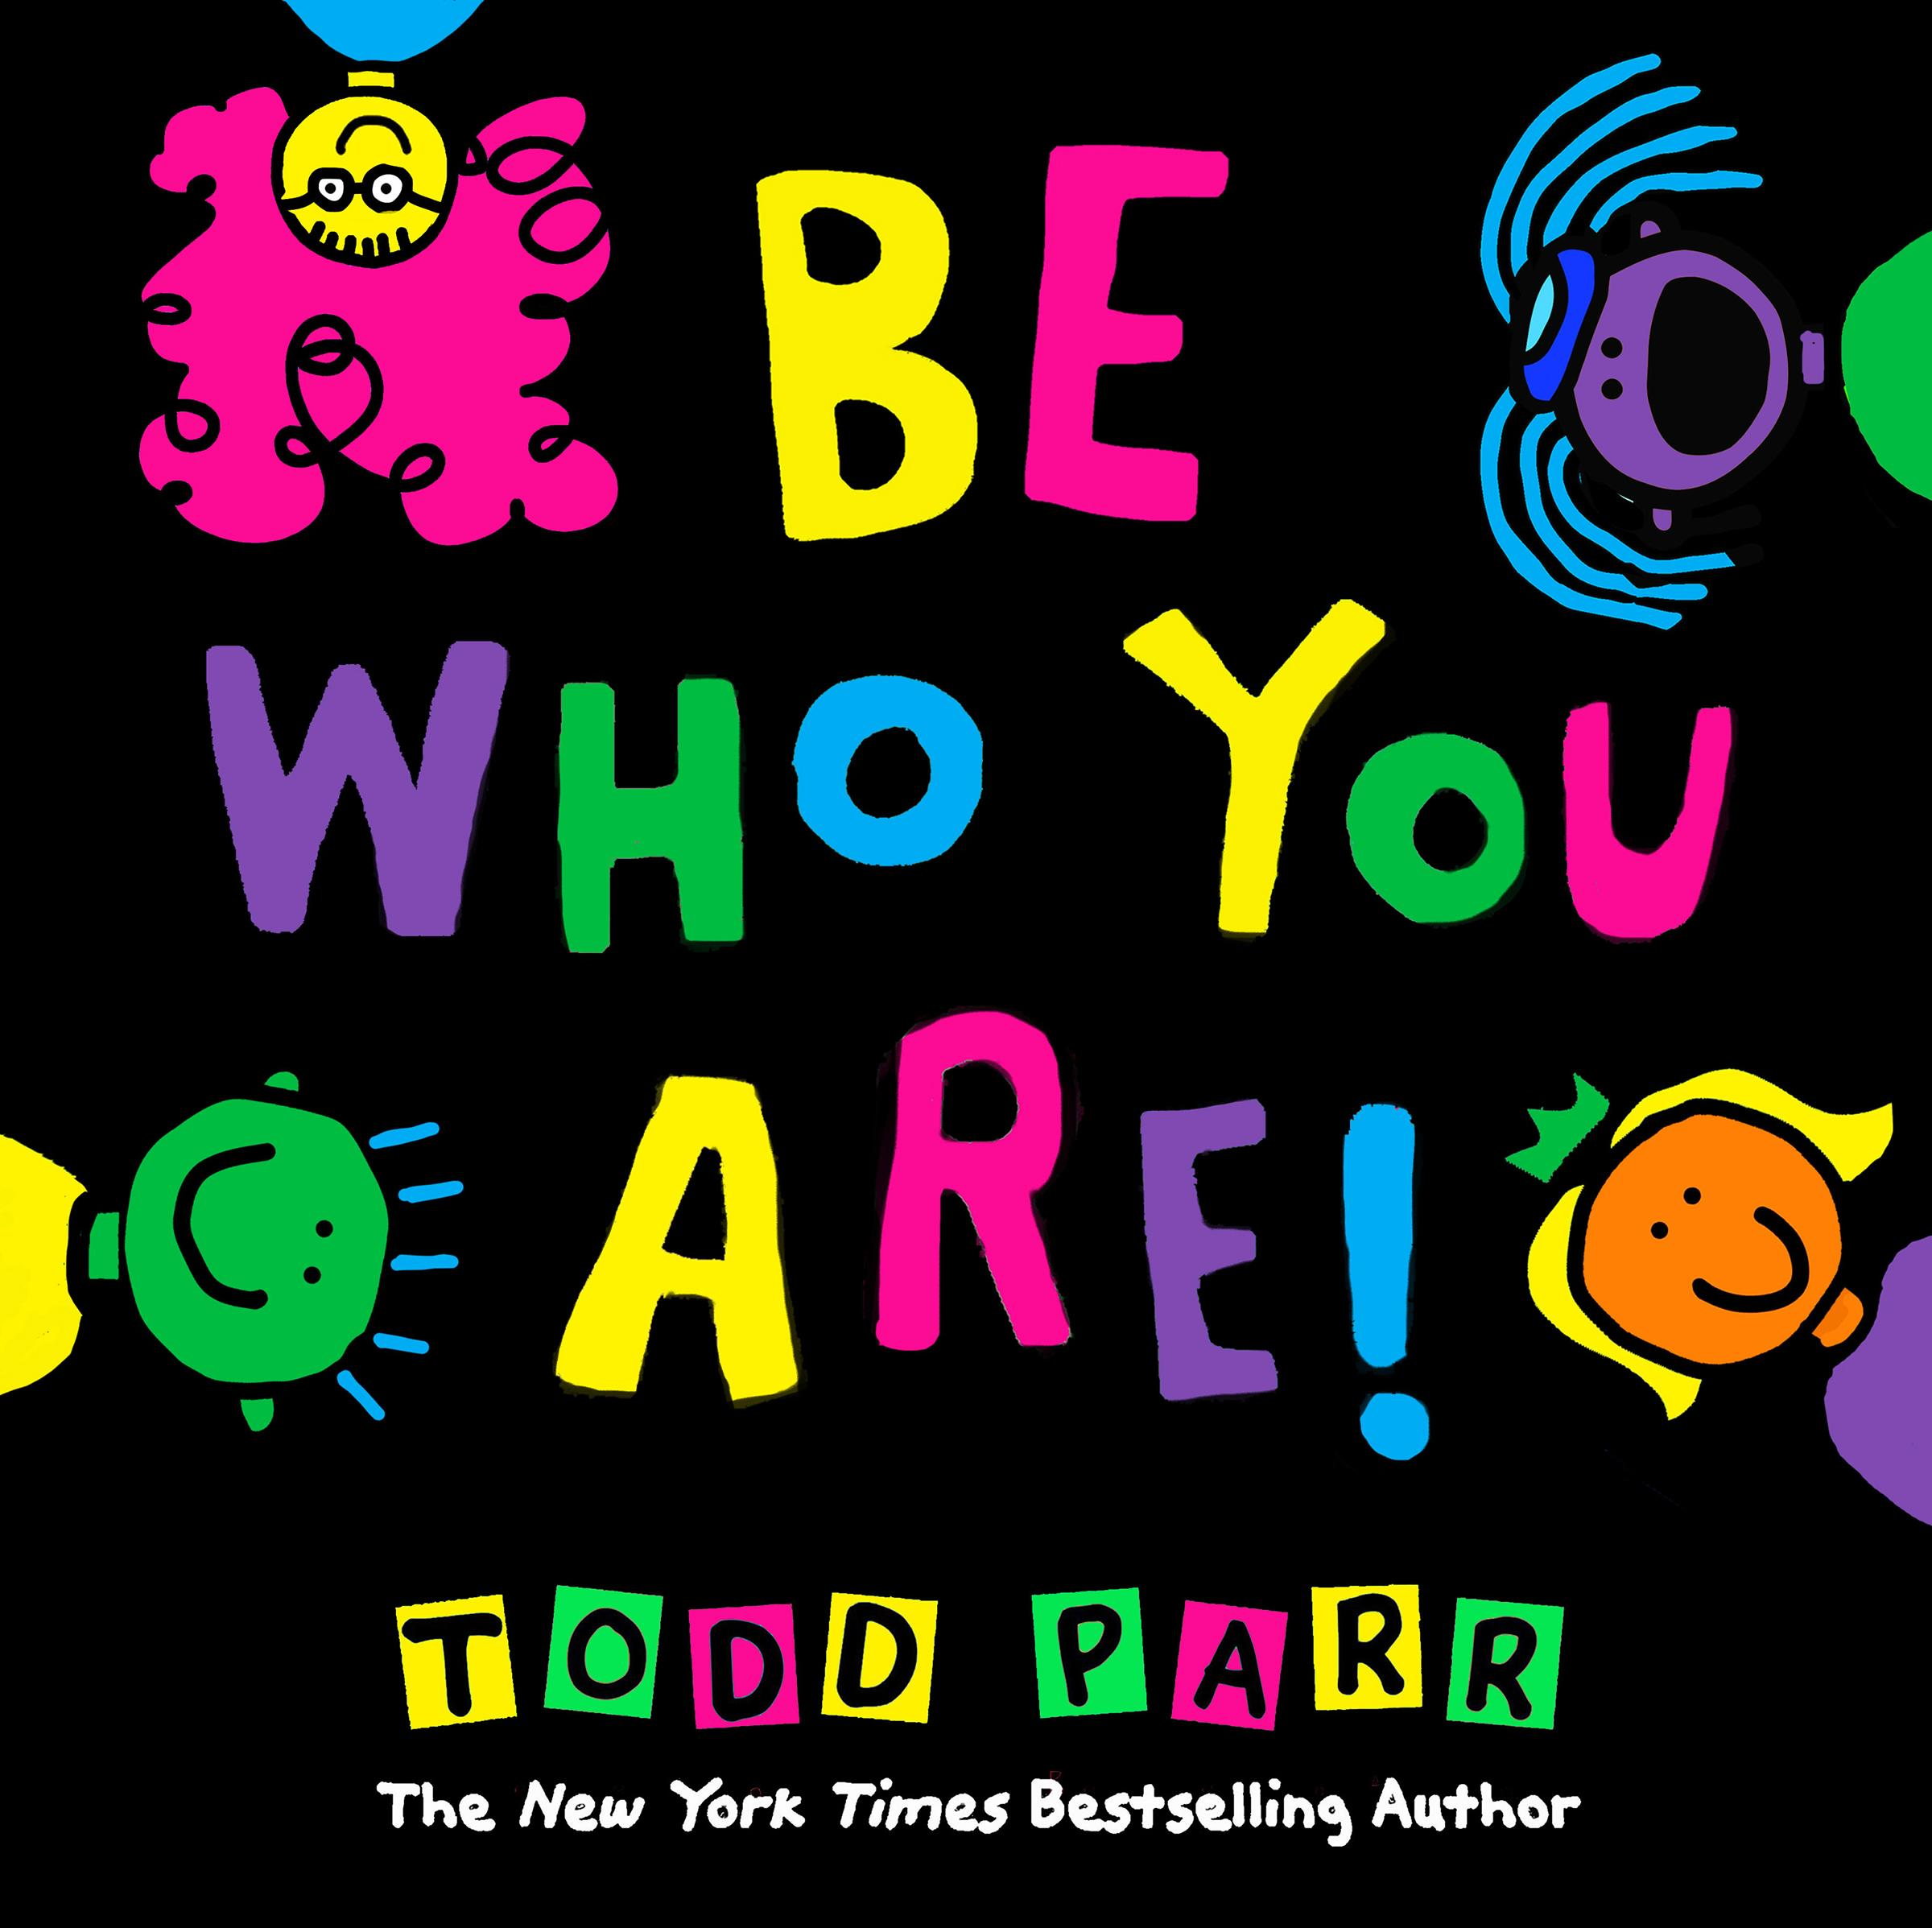 Todd Parr - Be who you are